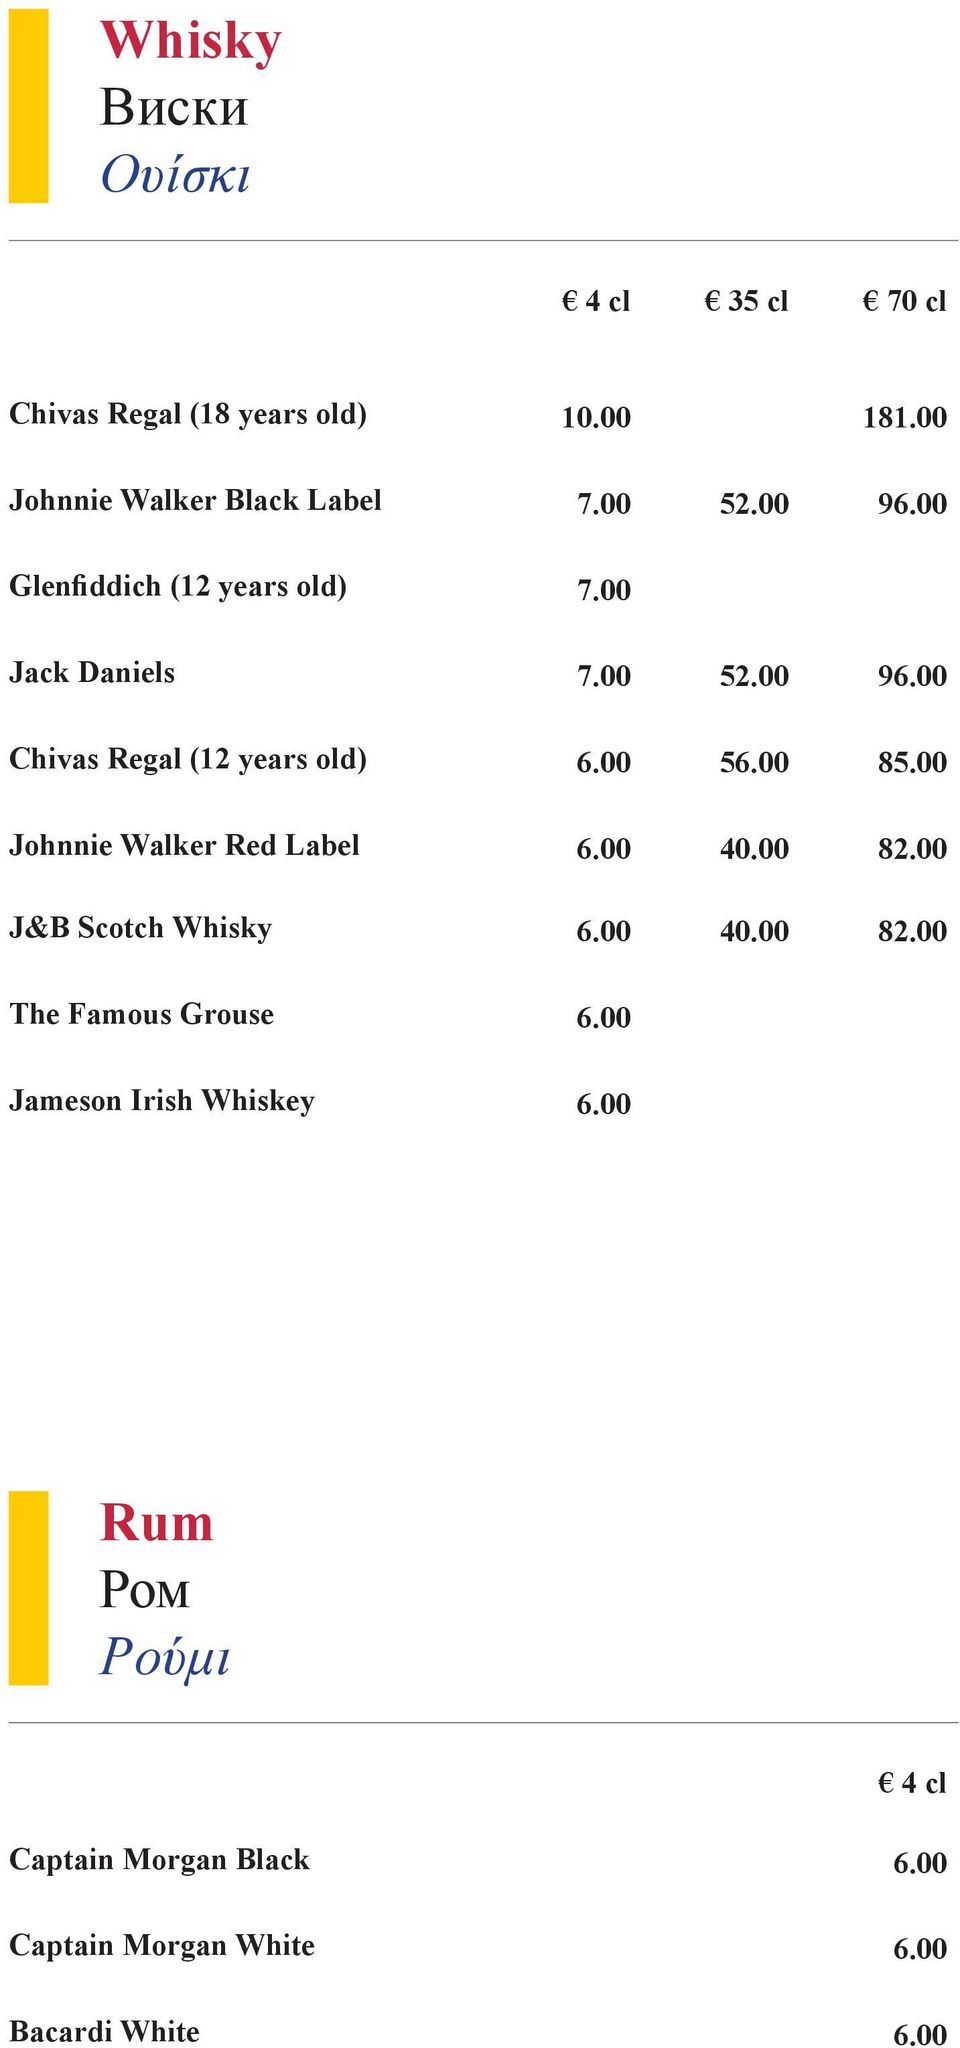 00 56.00 85.00 Johnnie Walker Red Label 6.00 40.00 82.00 J&B Scotch Whisky 6.00 40.00 82.00 The Famous Grouse 6.